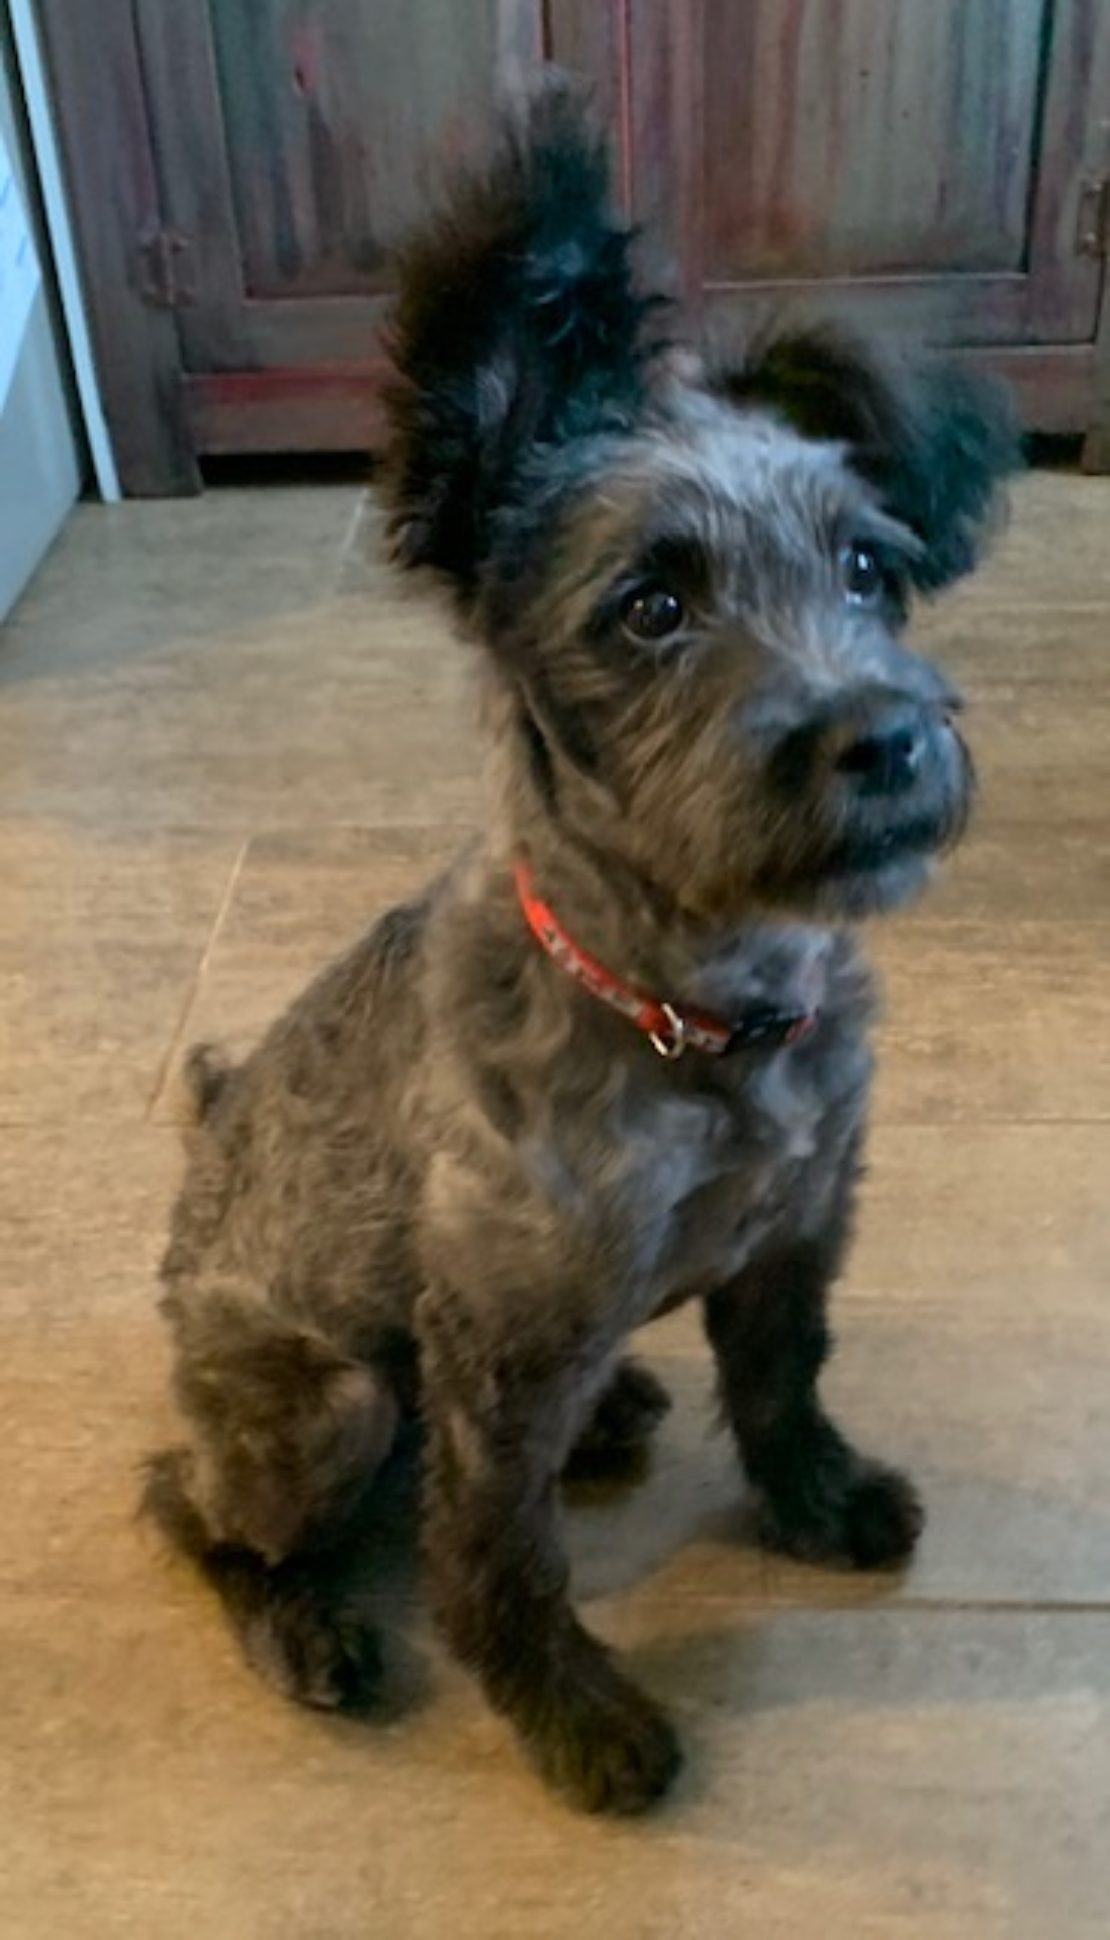 black terrier with pink collar looks at something unseen. One ear is up, and one is down.